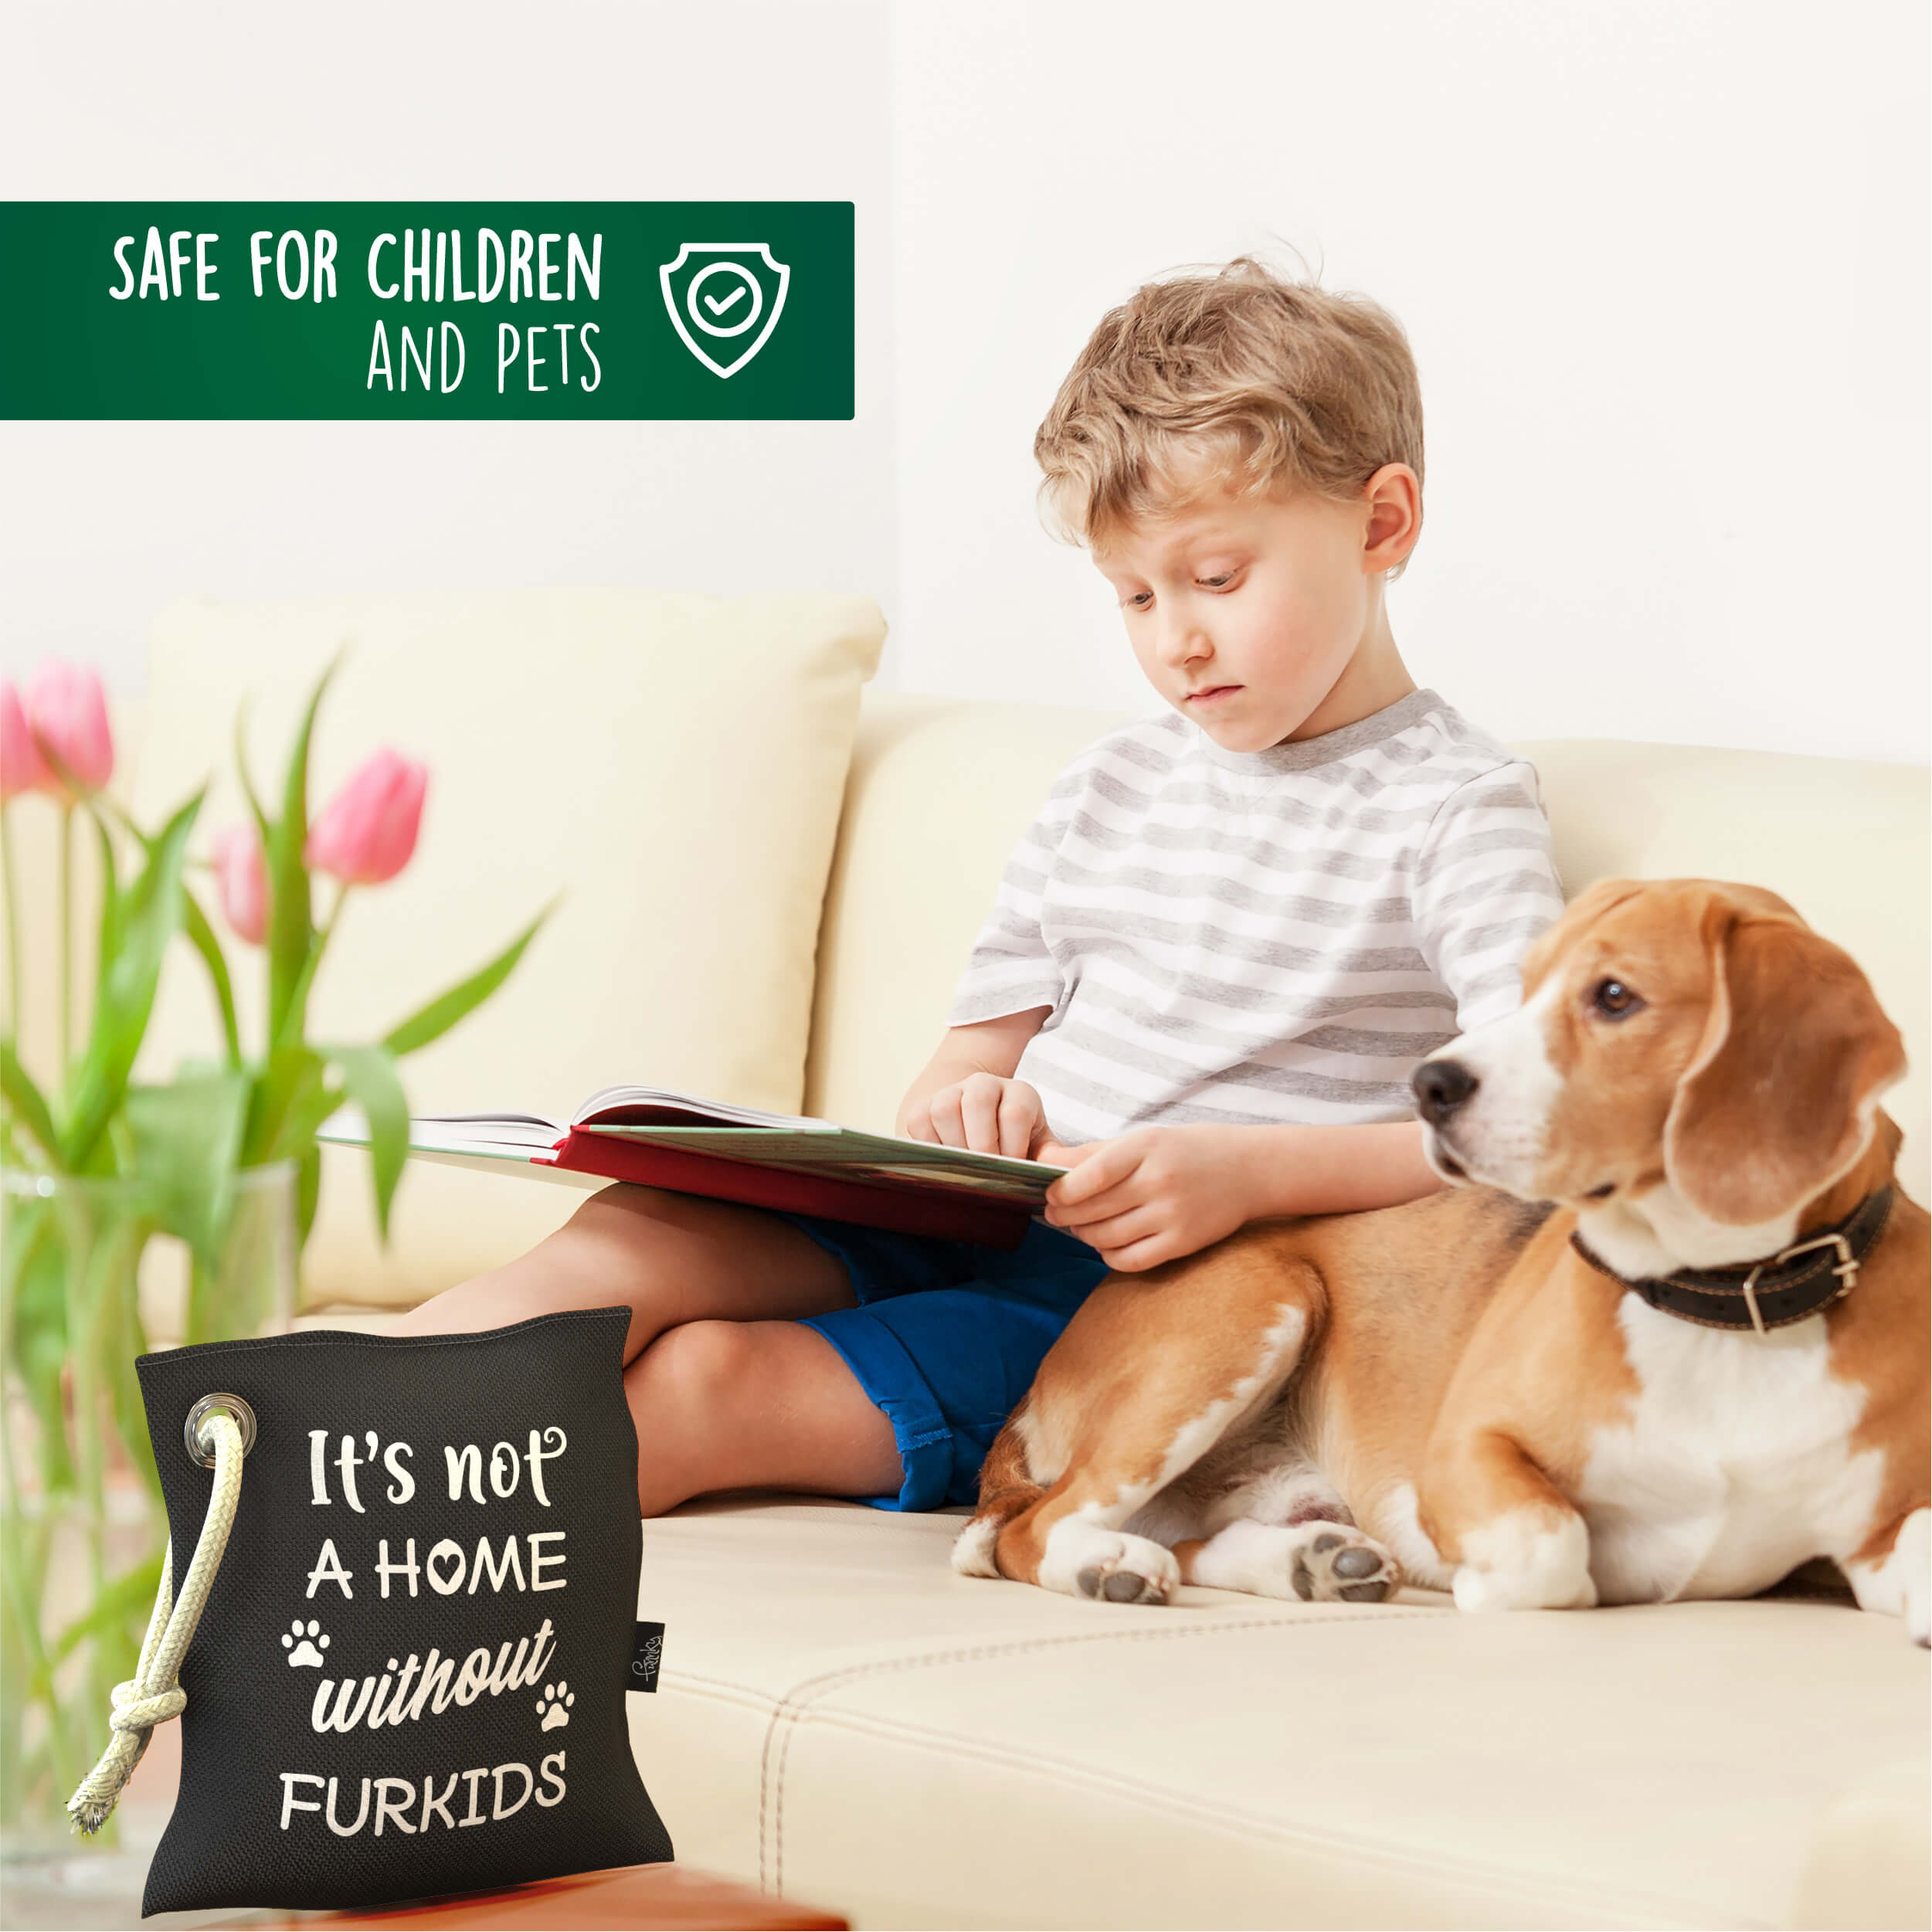 Funnky Bamboo Charcoal Air Purifying Bags safe for Children and Pets